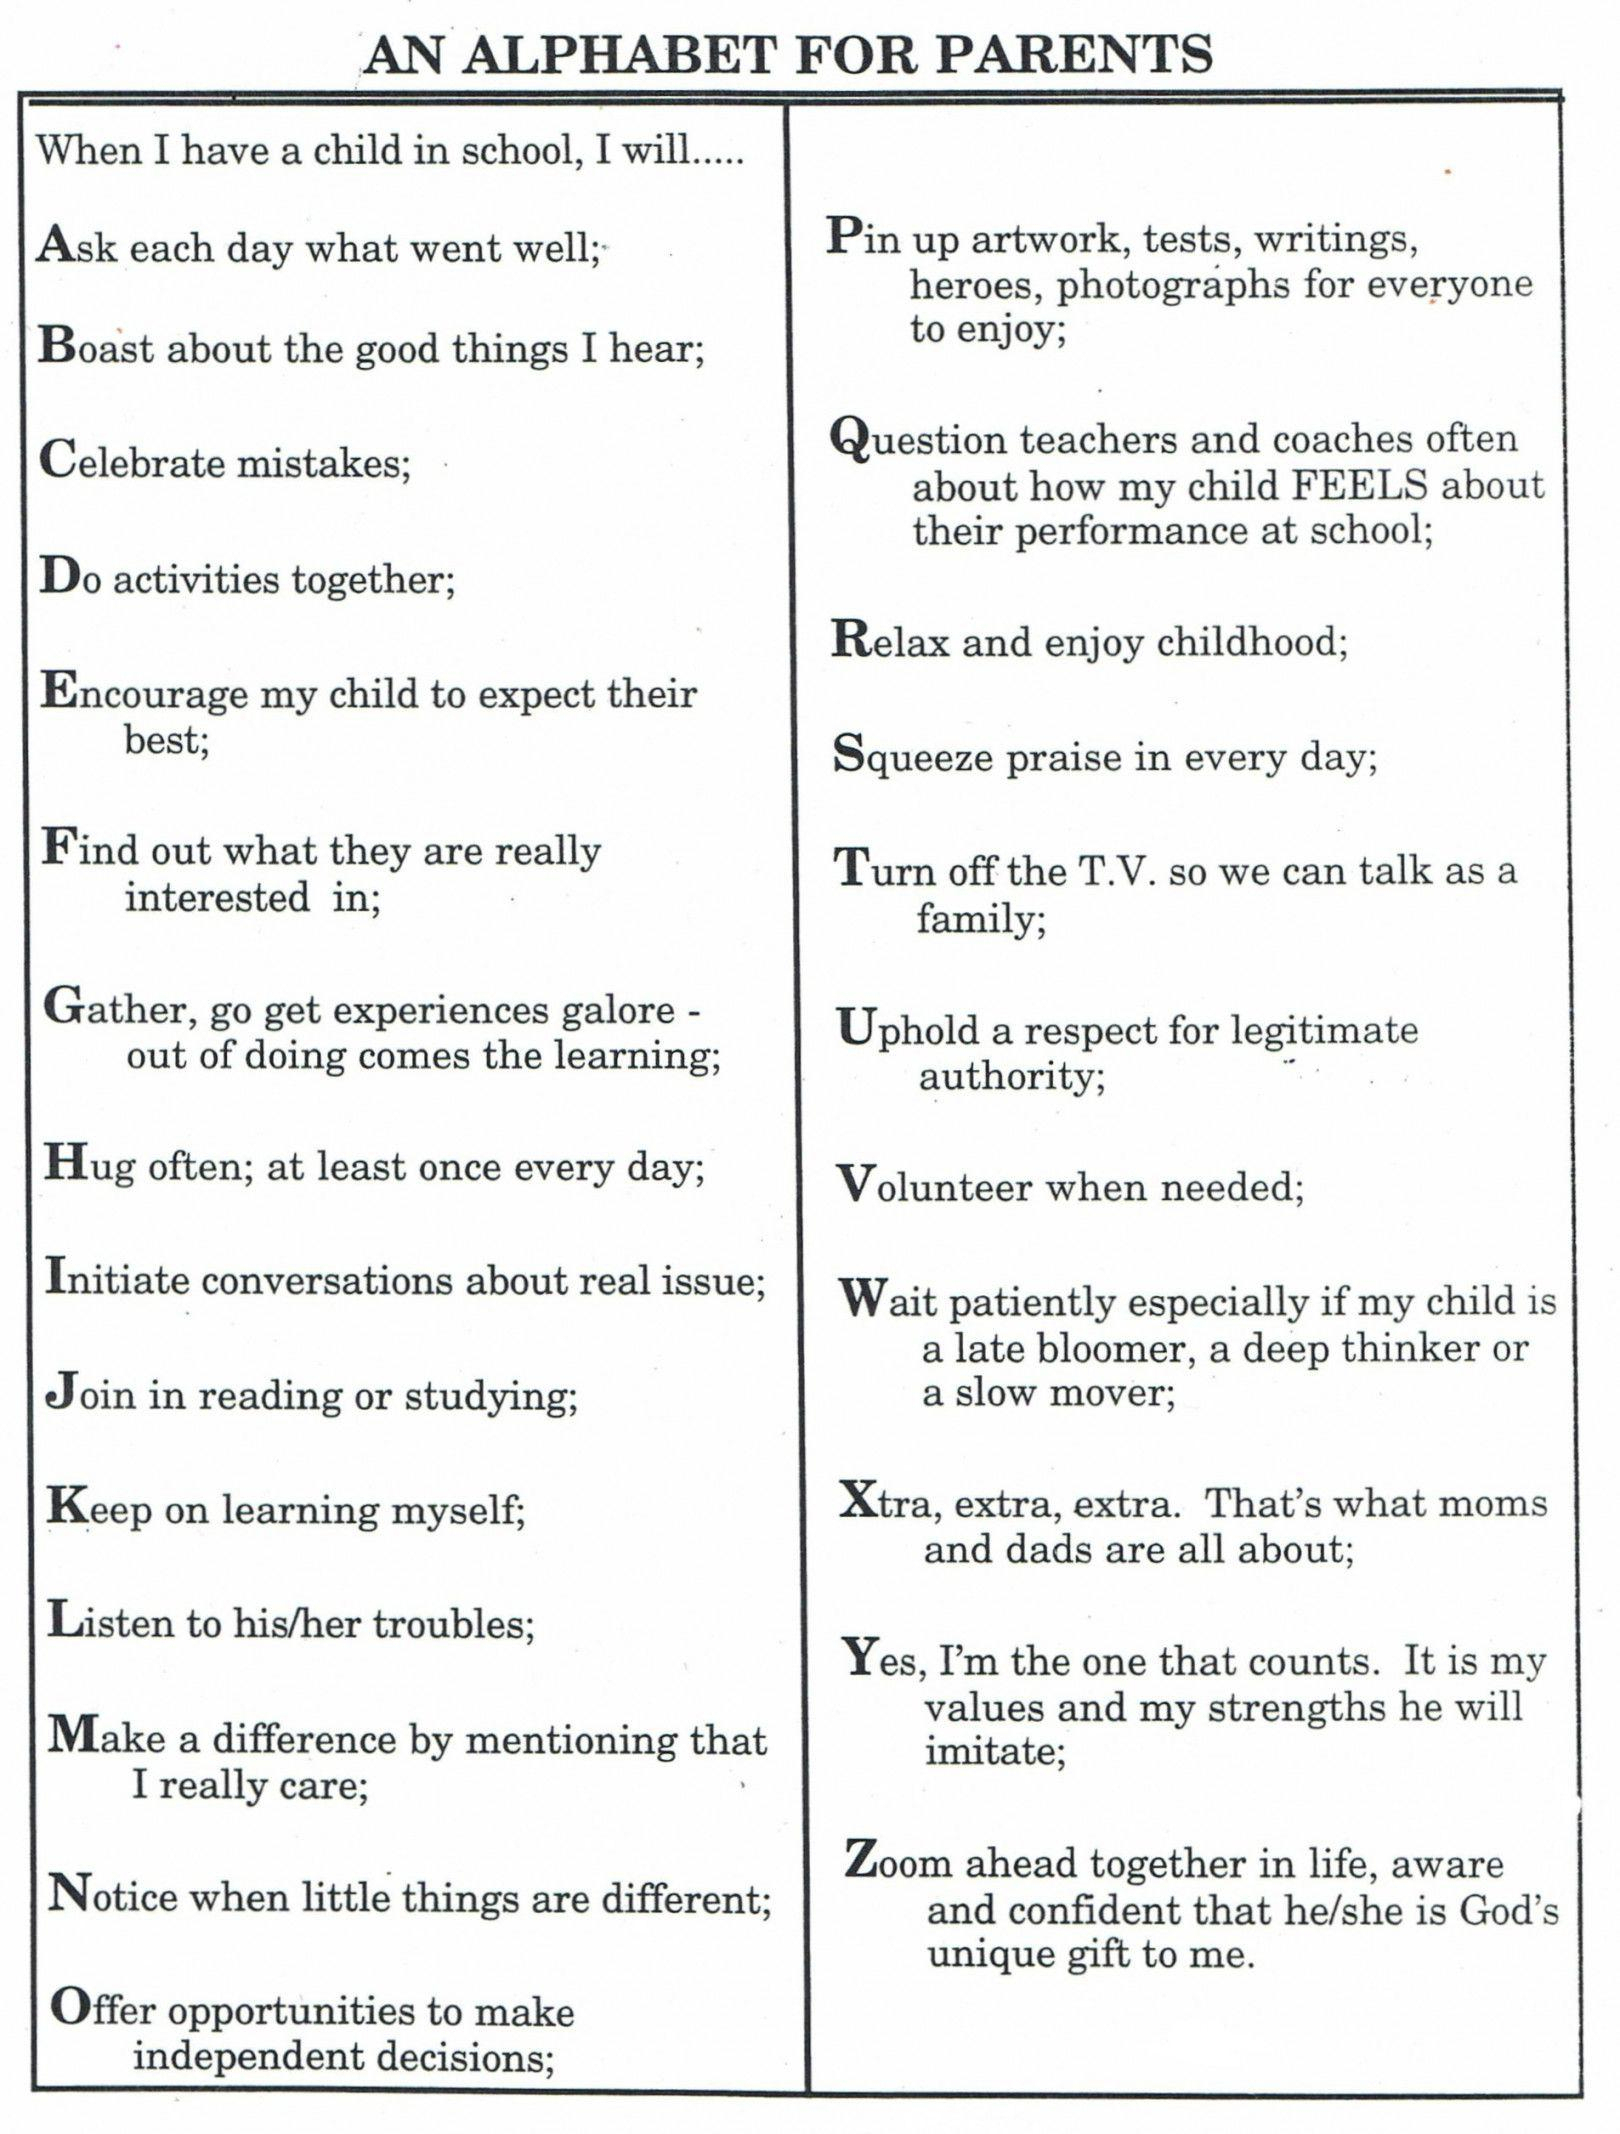 Free Printable Coping Skills Worksheets   Lostranquillos - Free   Free Printable Coping Skills Worksheets For Adults